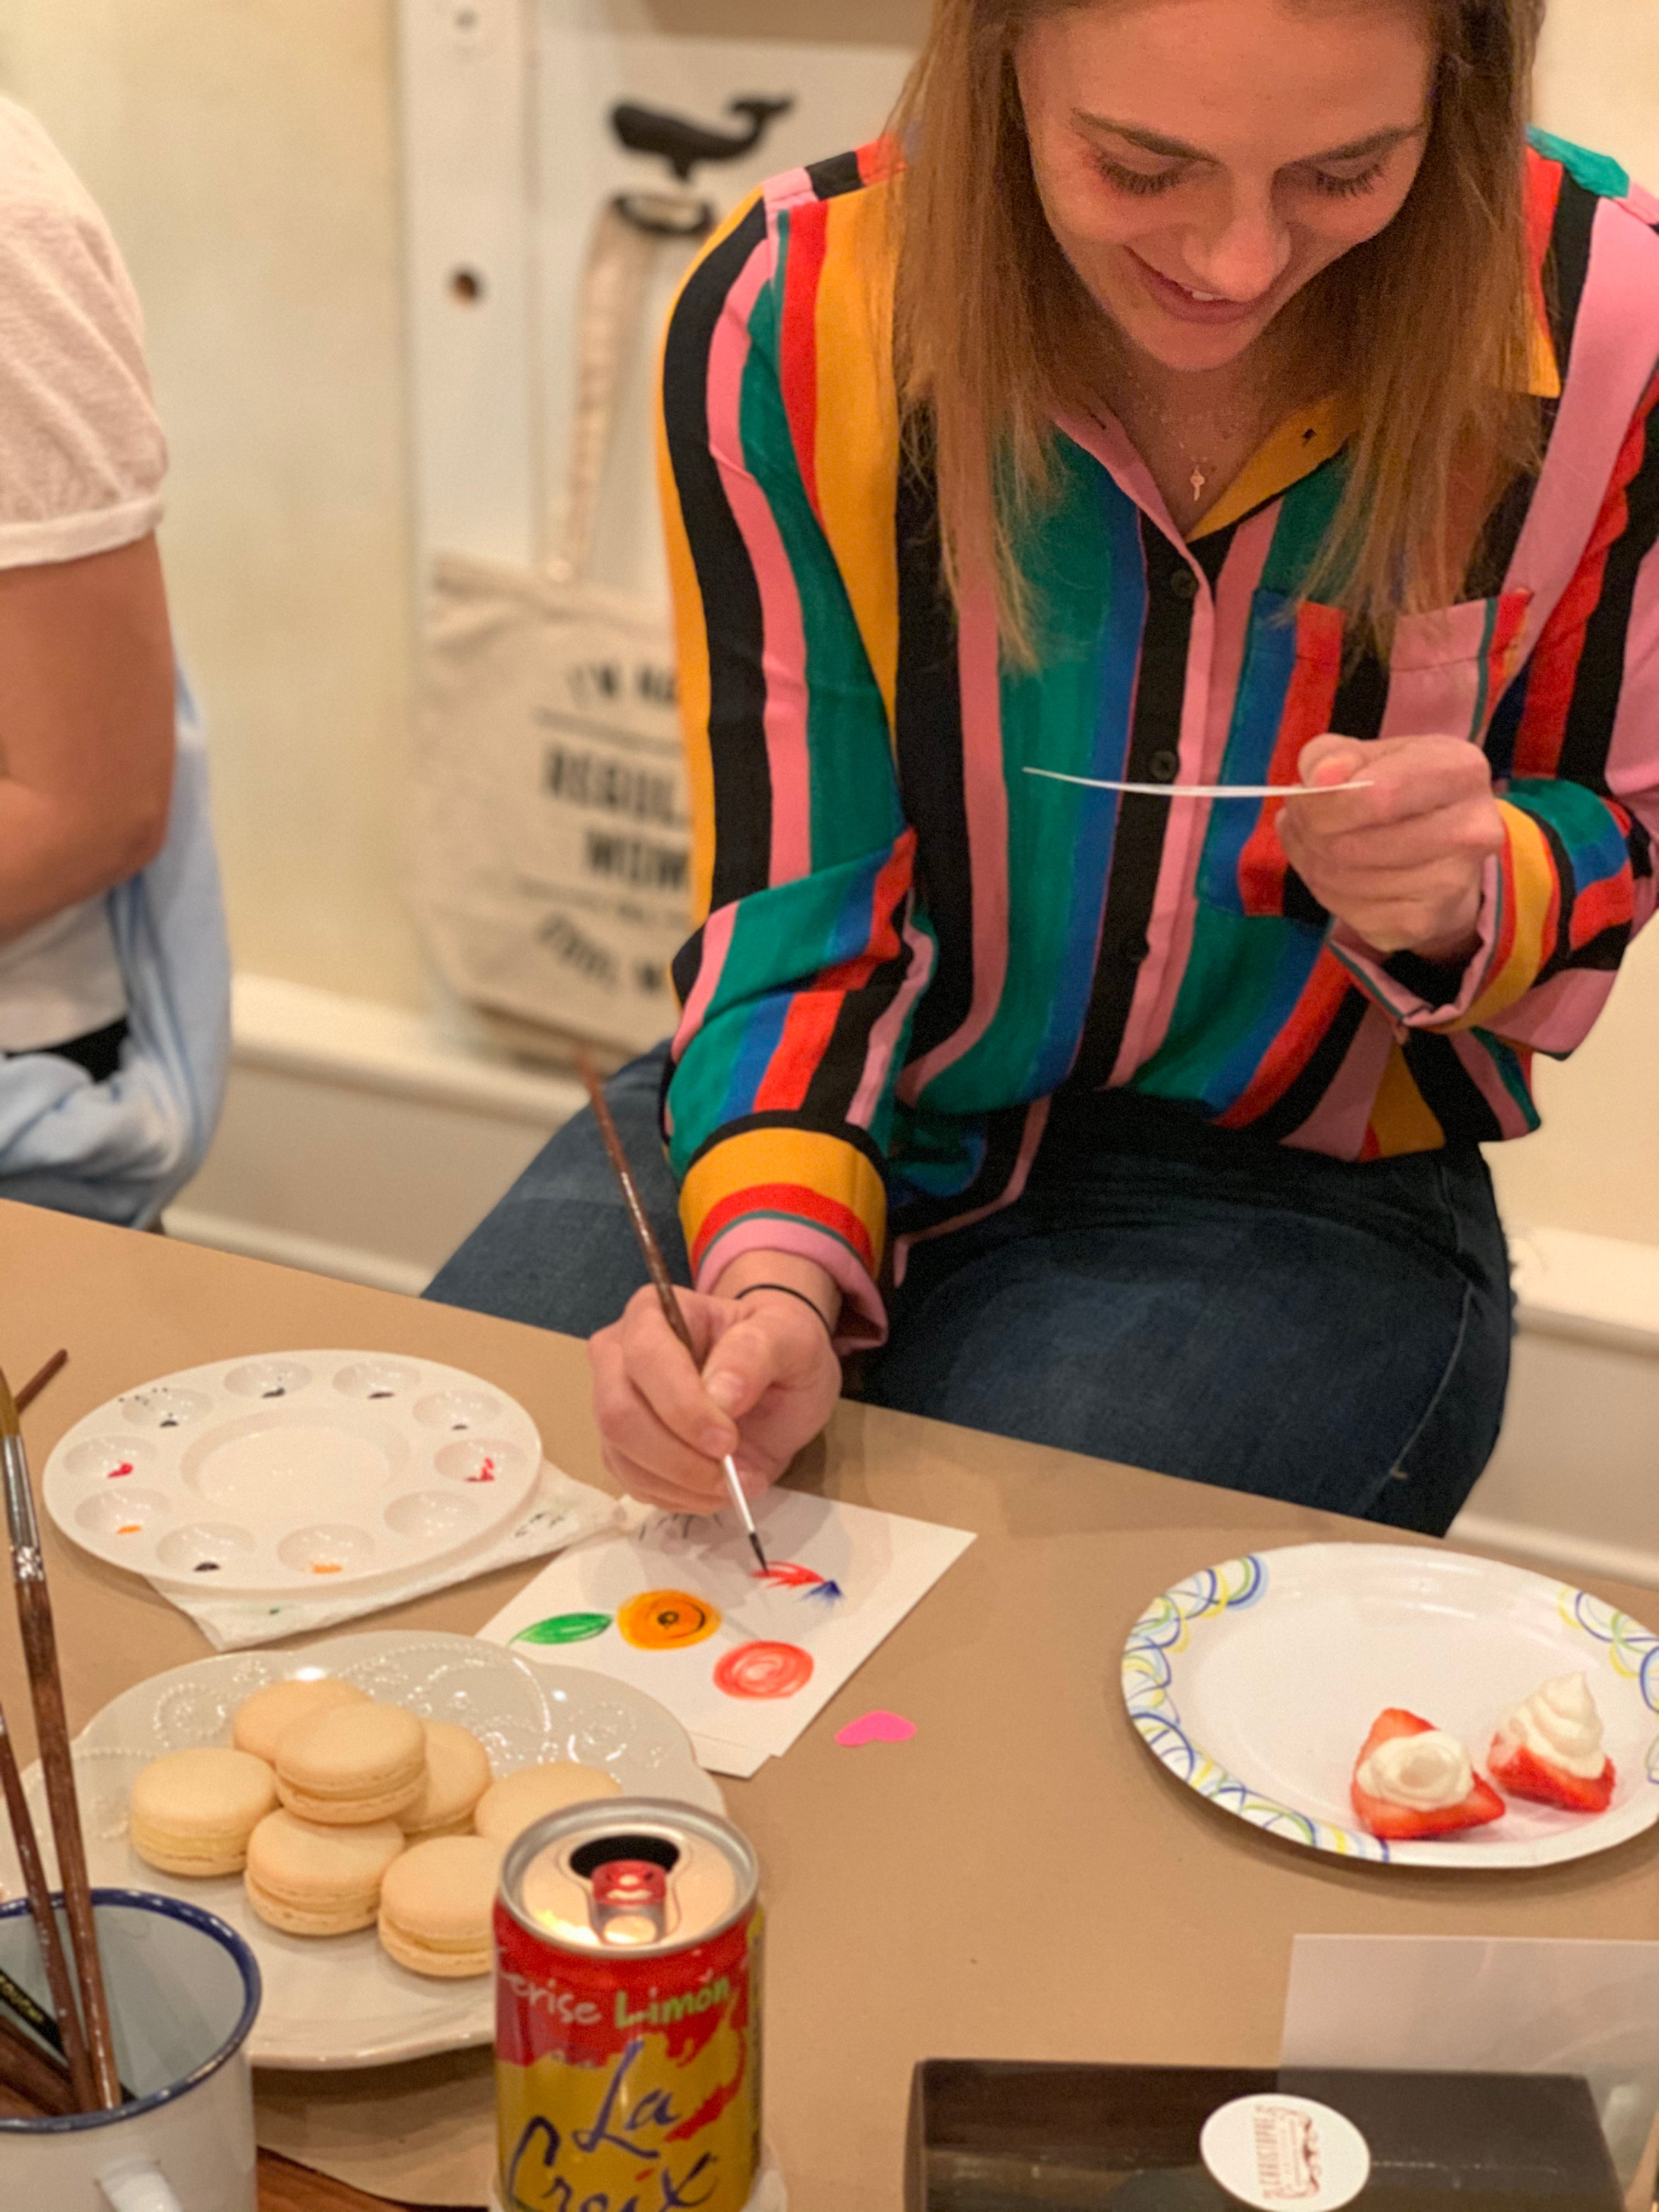 Private Macaron Painting Workshop - June 11th at 11am